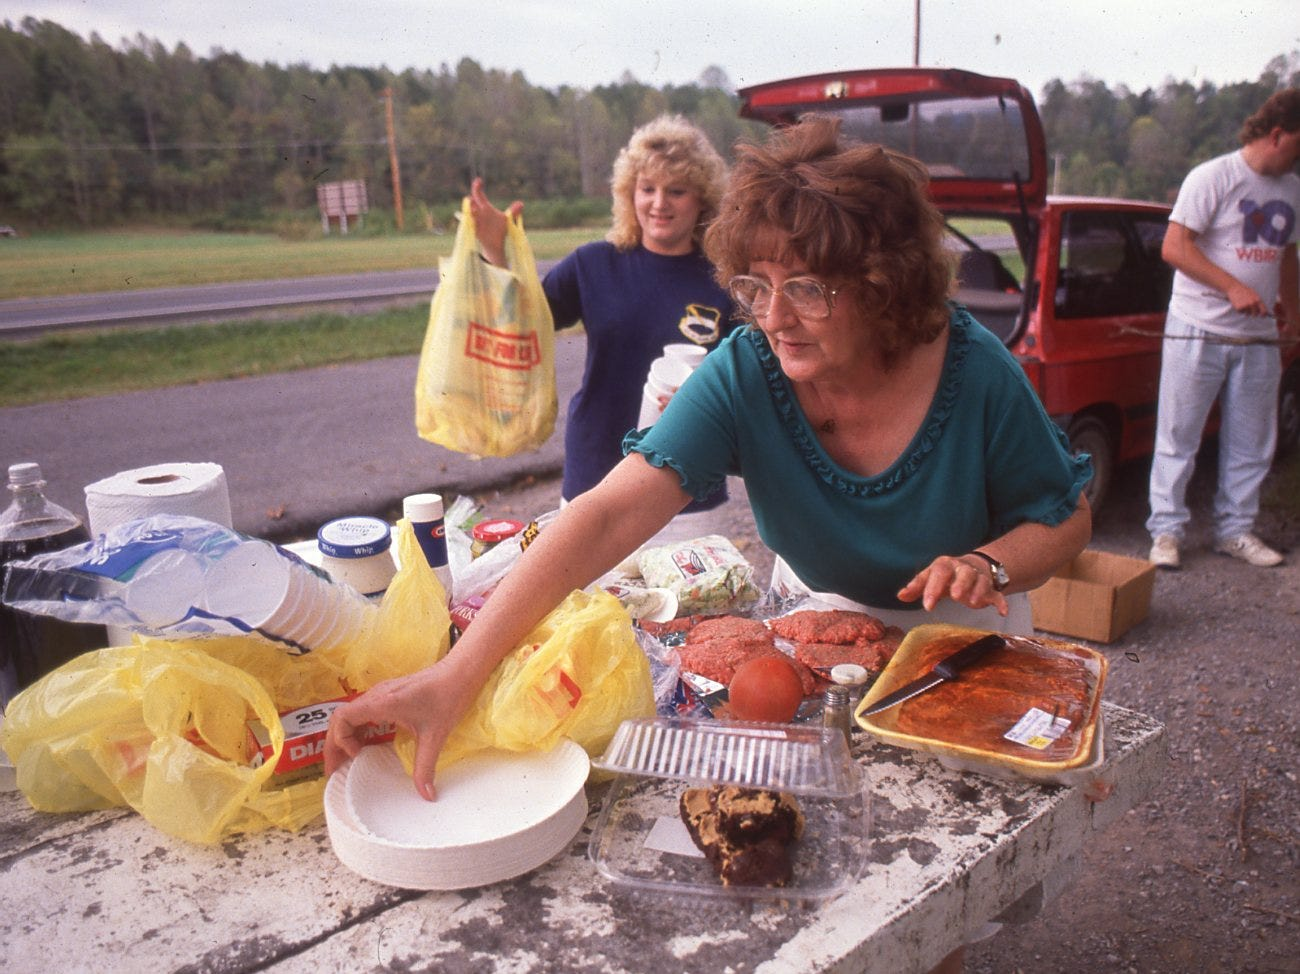 Helen Lunsford prepares to cook hamburgers for her family (Tracy Ingle, left and Eddie Lunsford) at a rest area. Lunsford had travels from Harriman for a picnic in Cades Cove but found the park closed, October, 1990.